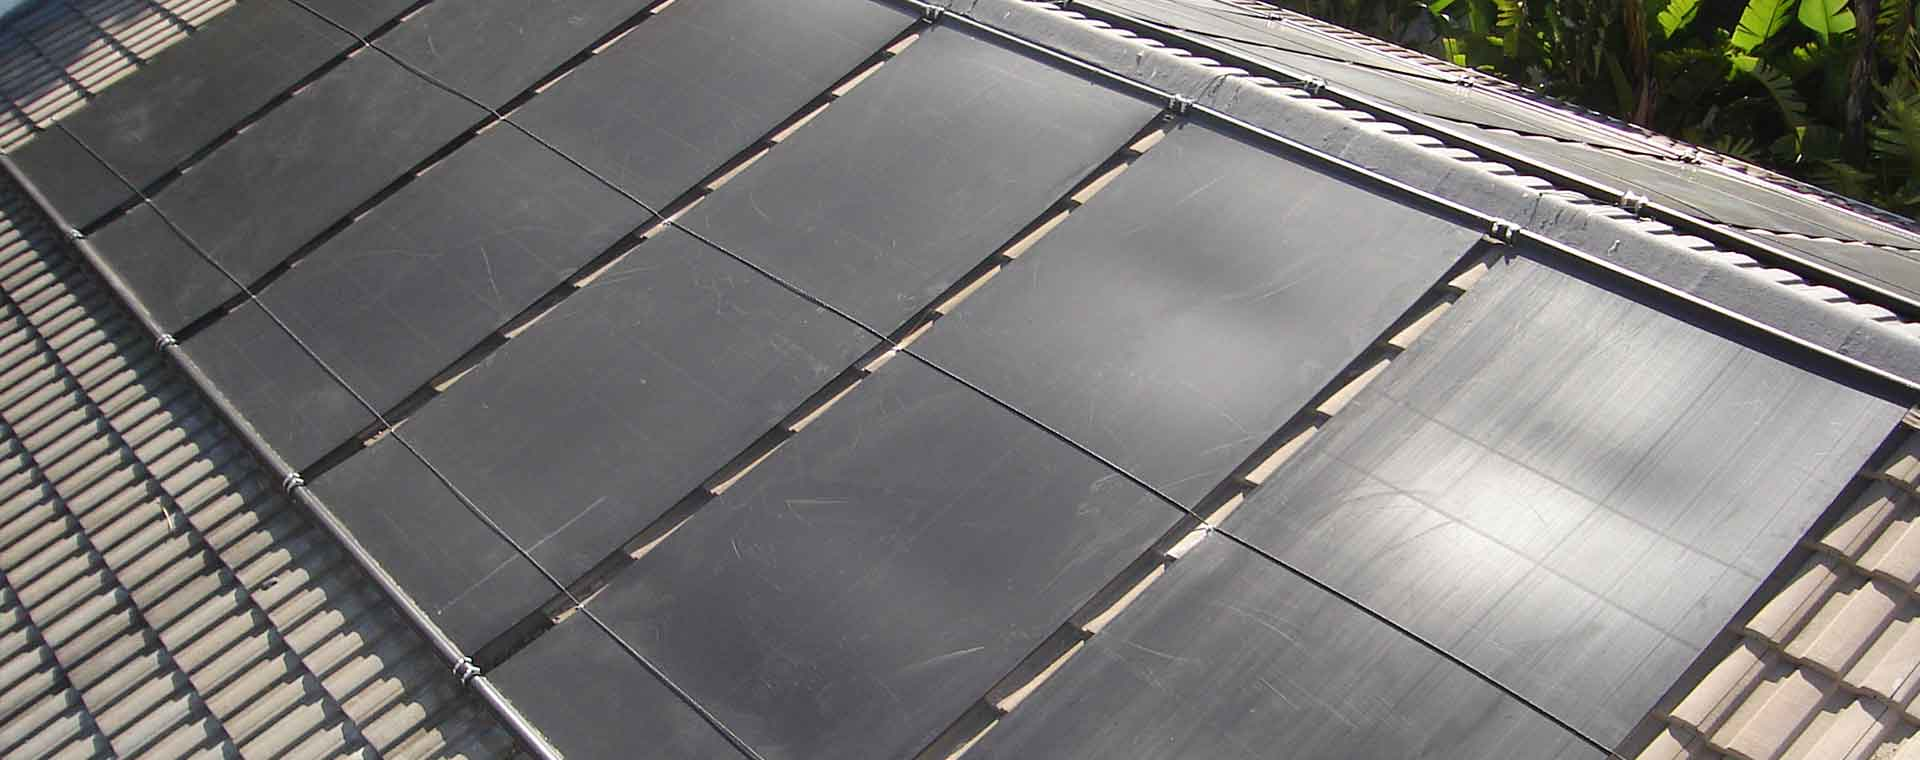 Solar Pool Heating Systems Solar Pool Covers Digital